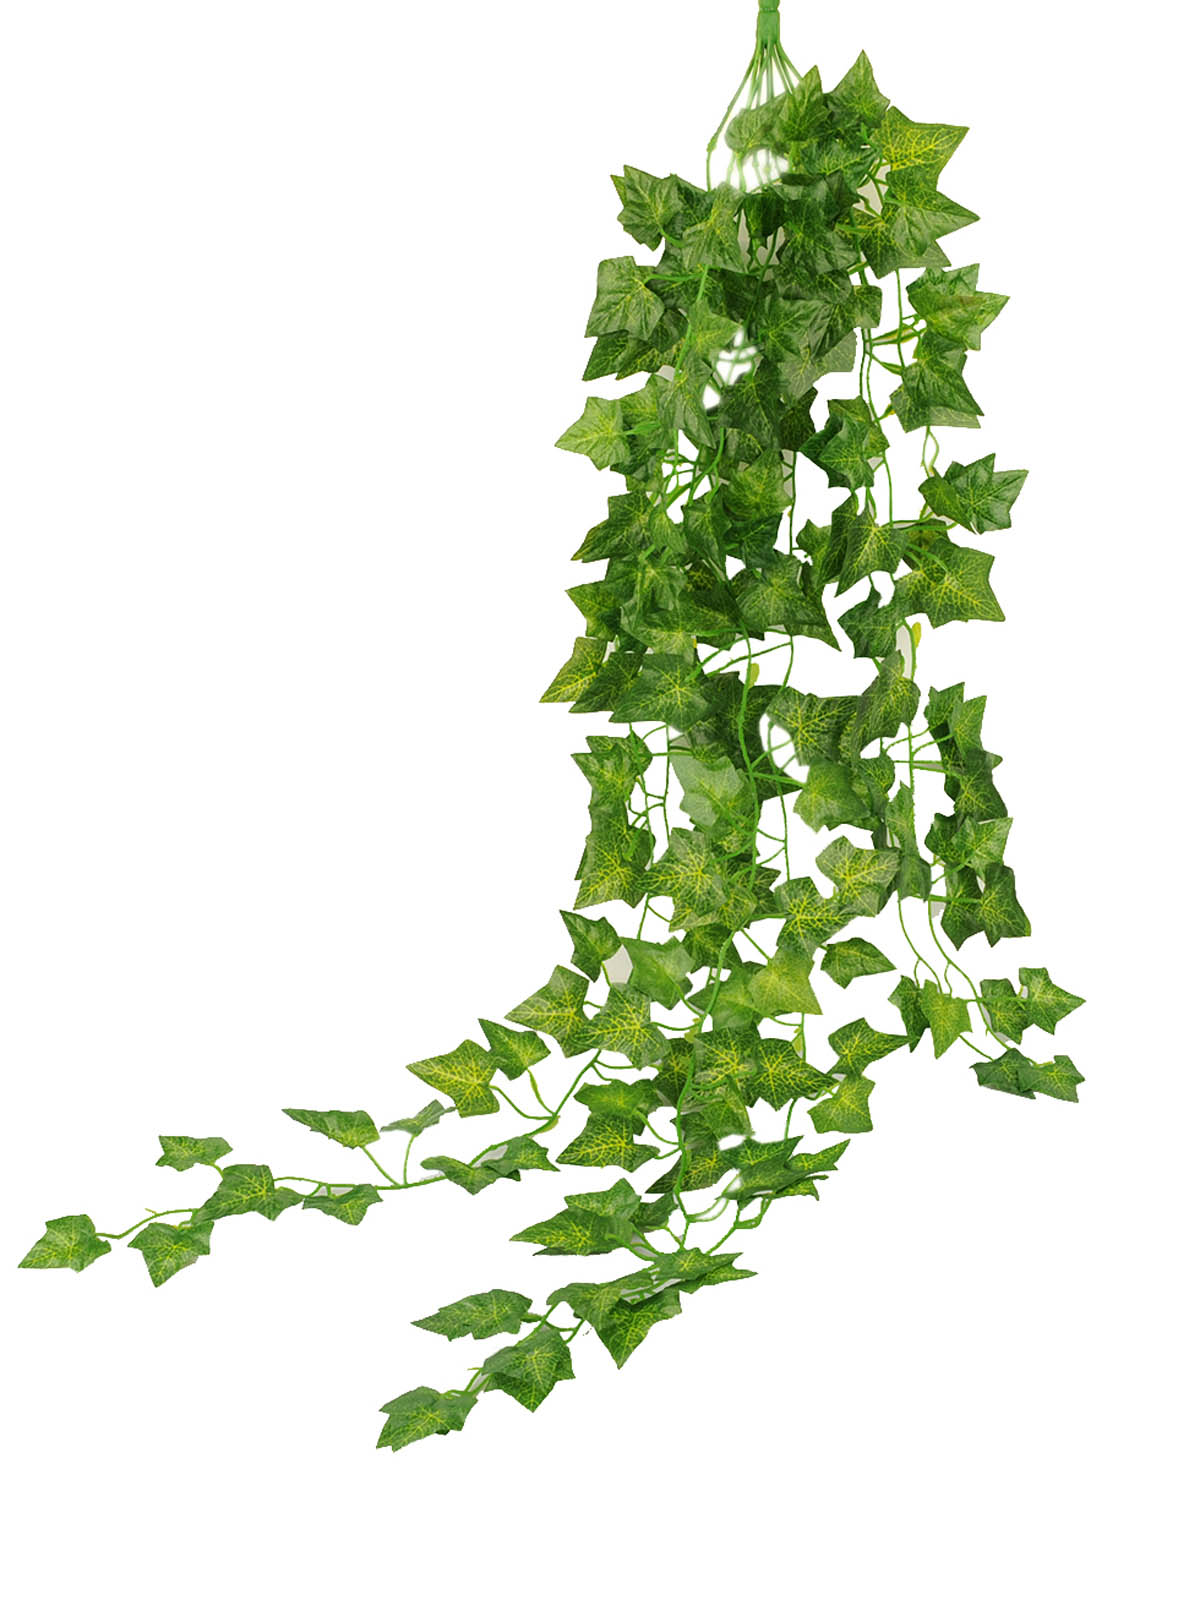 Wall Hanging Plants Artificial Garden Green Plant Hanging Vine Plant Leaves